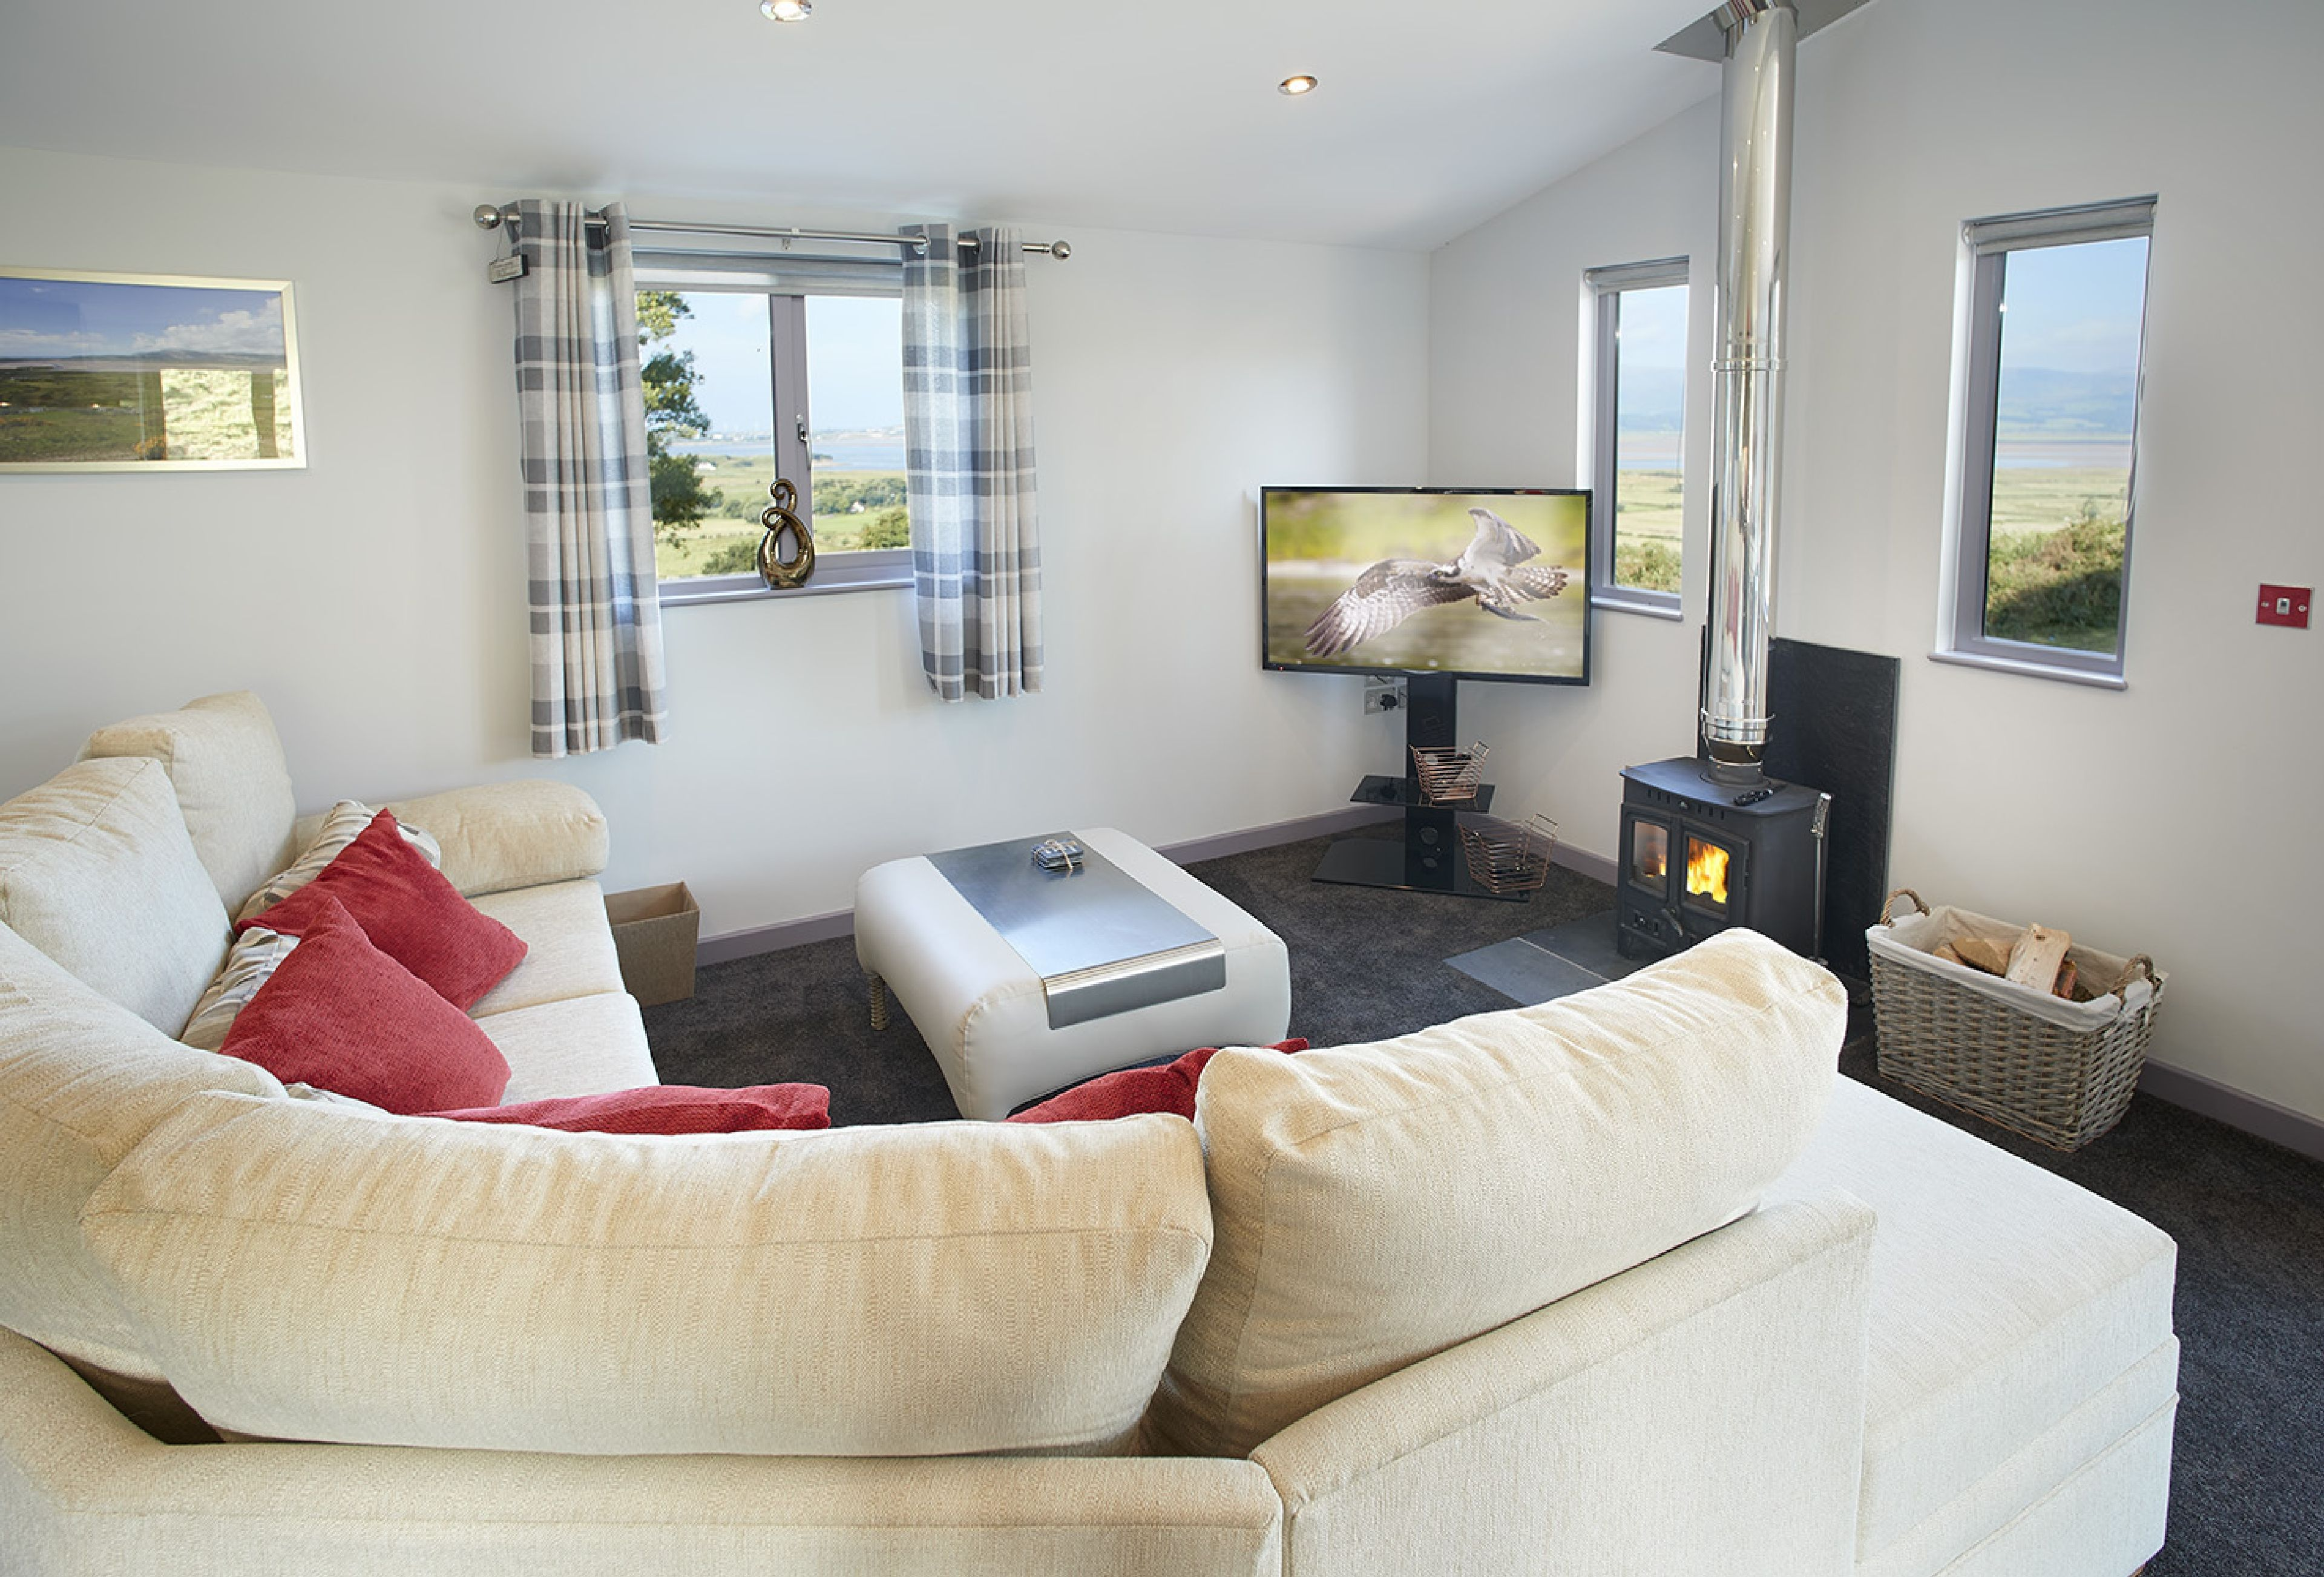 High Bridge Haven - Holiday Cottages in Cumbria